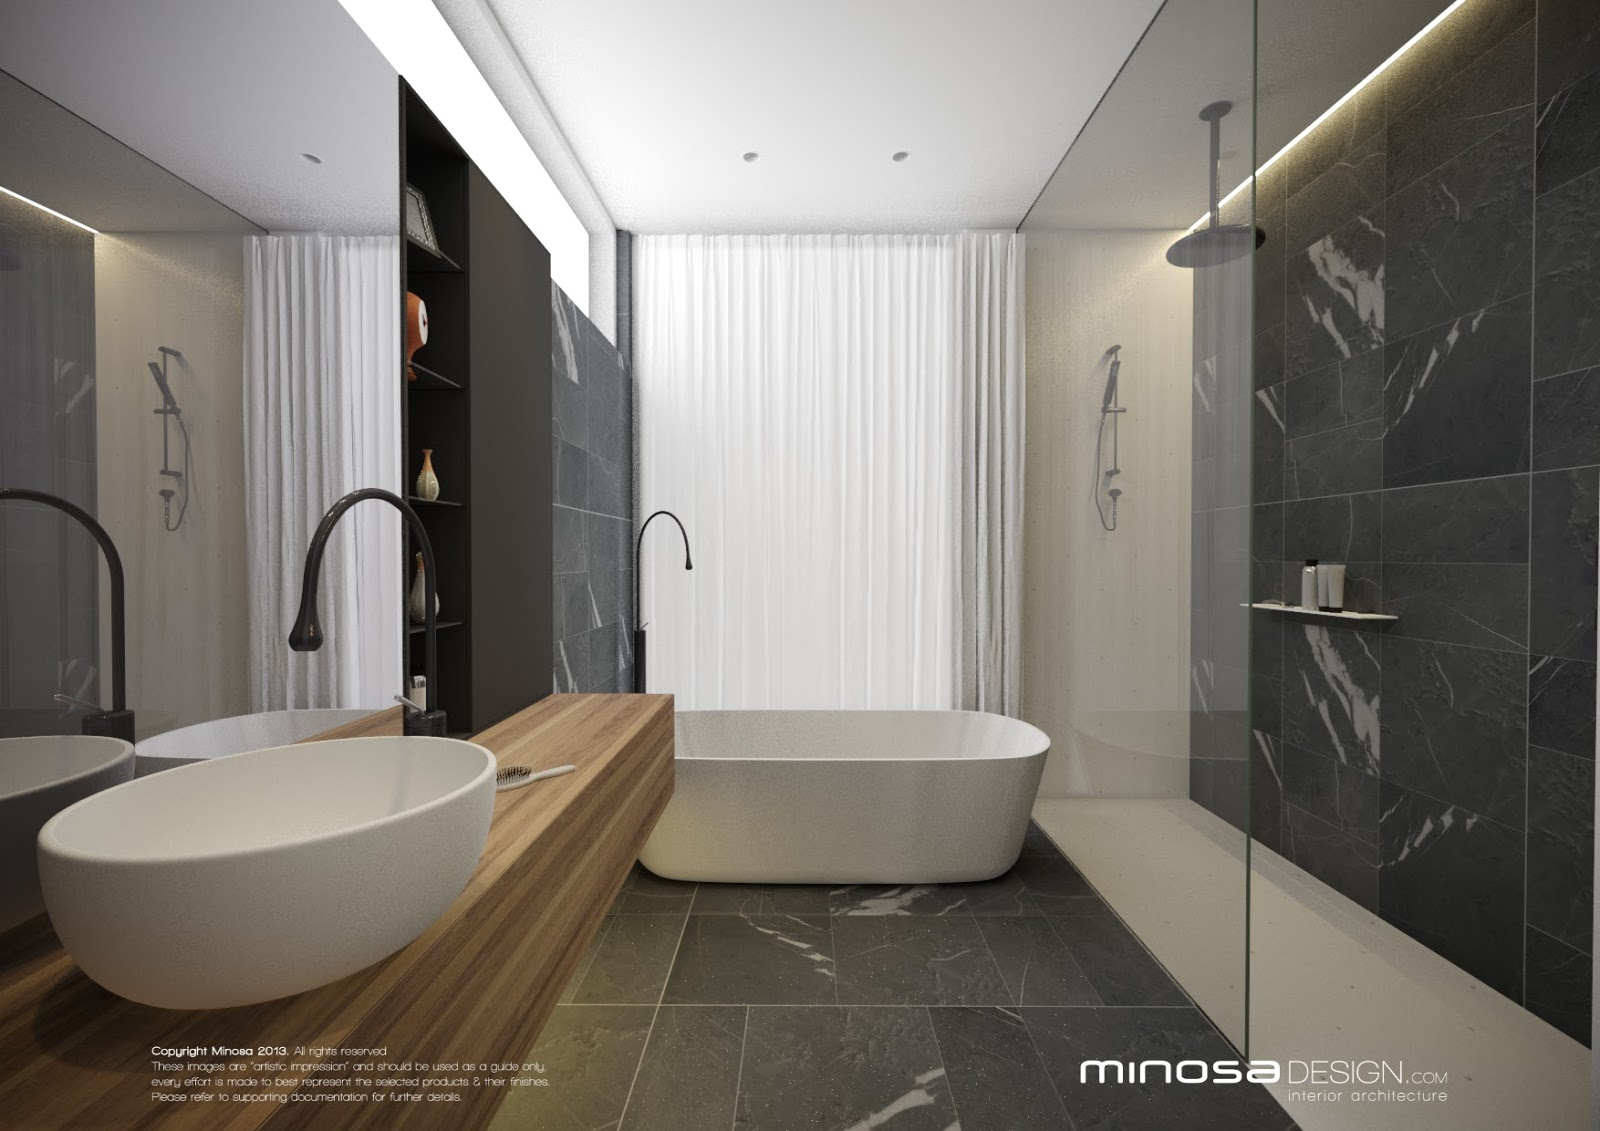 Minosa modern bathroom design to share for Design own bathroom